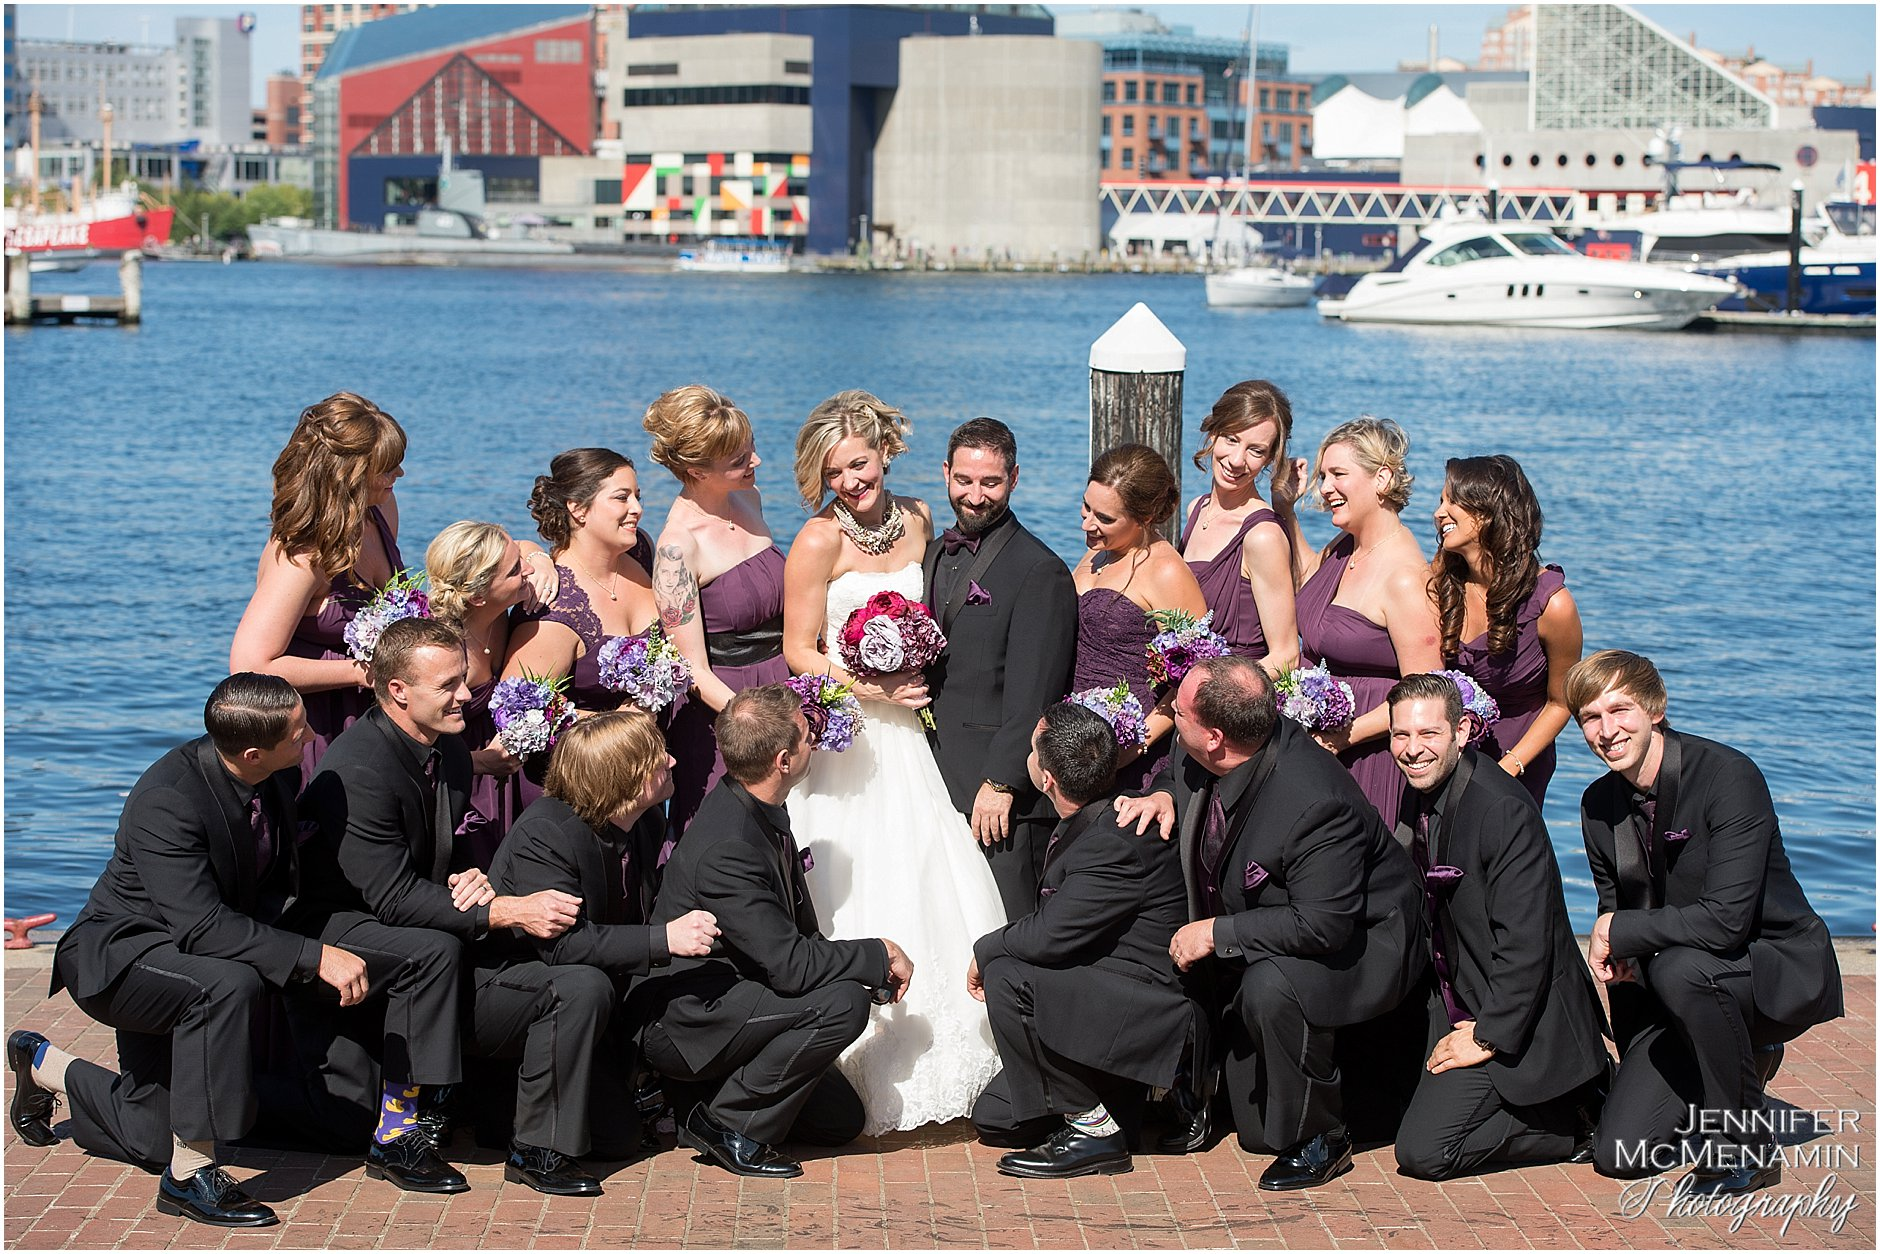 011-MorrisPustilnik_00849-0131_Jennifer-McMenamin-Photography-Royal-Sonesta-Harbor-Court-Hotel-wedding-Baltimore-wedding-photographer